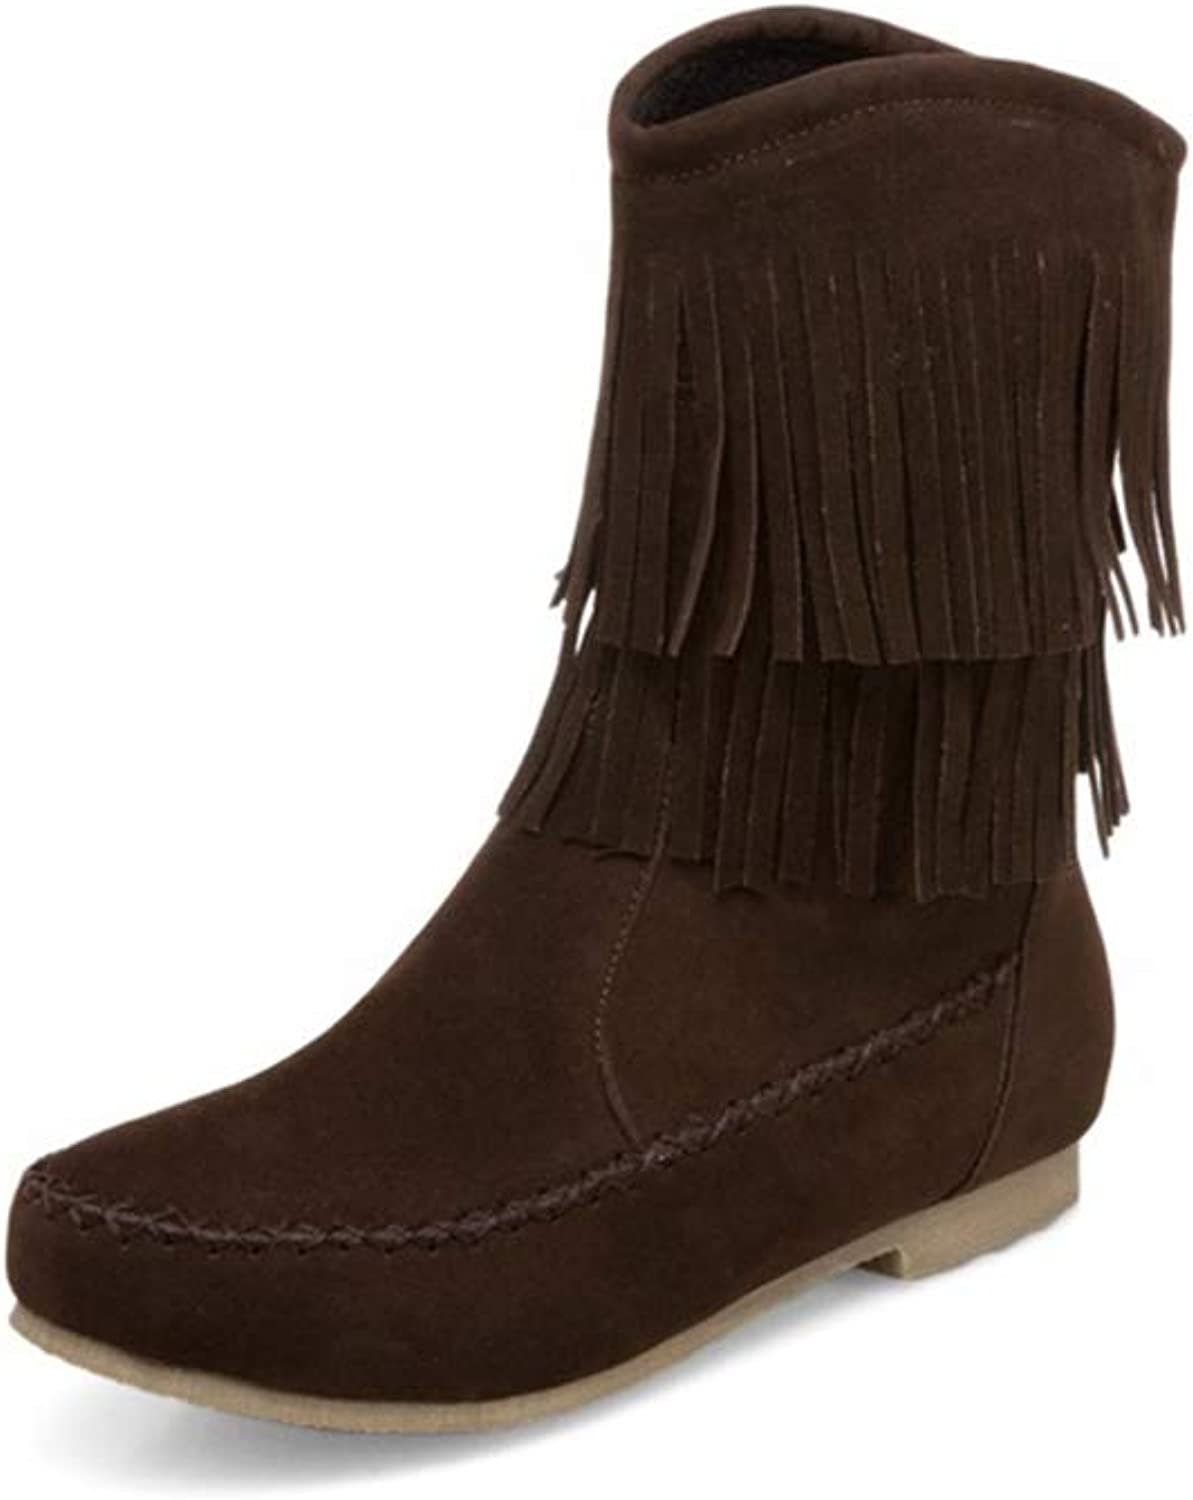 Jim Hugh Womens Mid Boots shoes Women Round Toe Low Square Heel Slip-On Fringe Solid Concise Casual Outside Mid Calf Boots